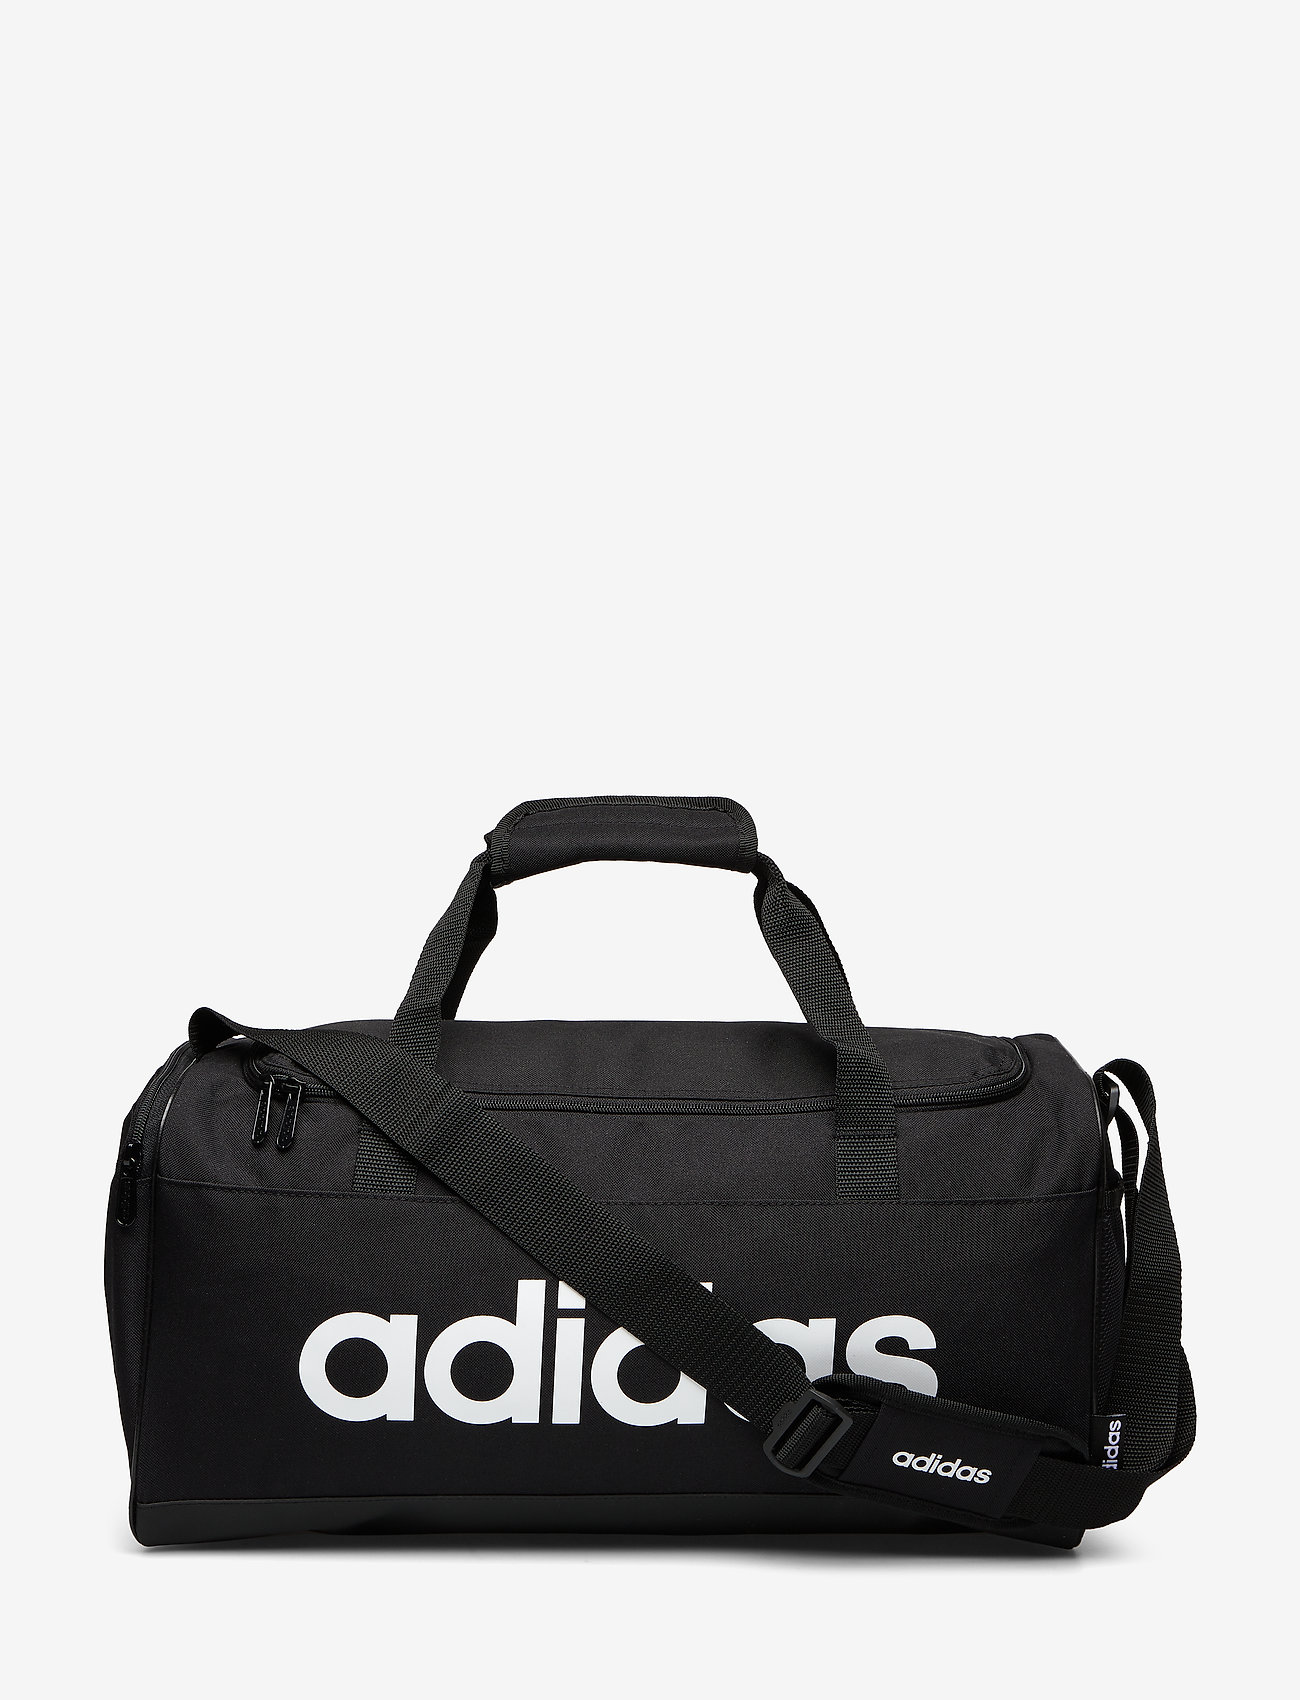 adidas Performance - LIN DUFFLE S - trainingstaschen - black/black/white - 0